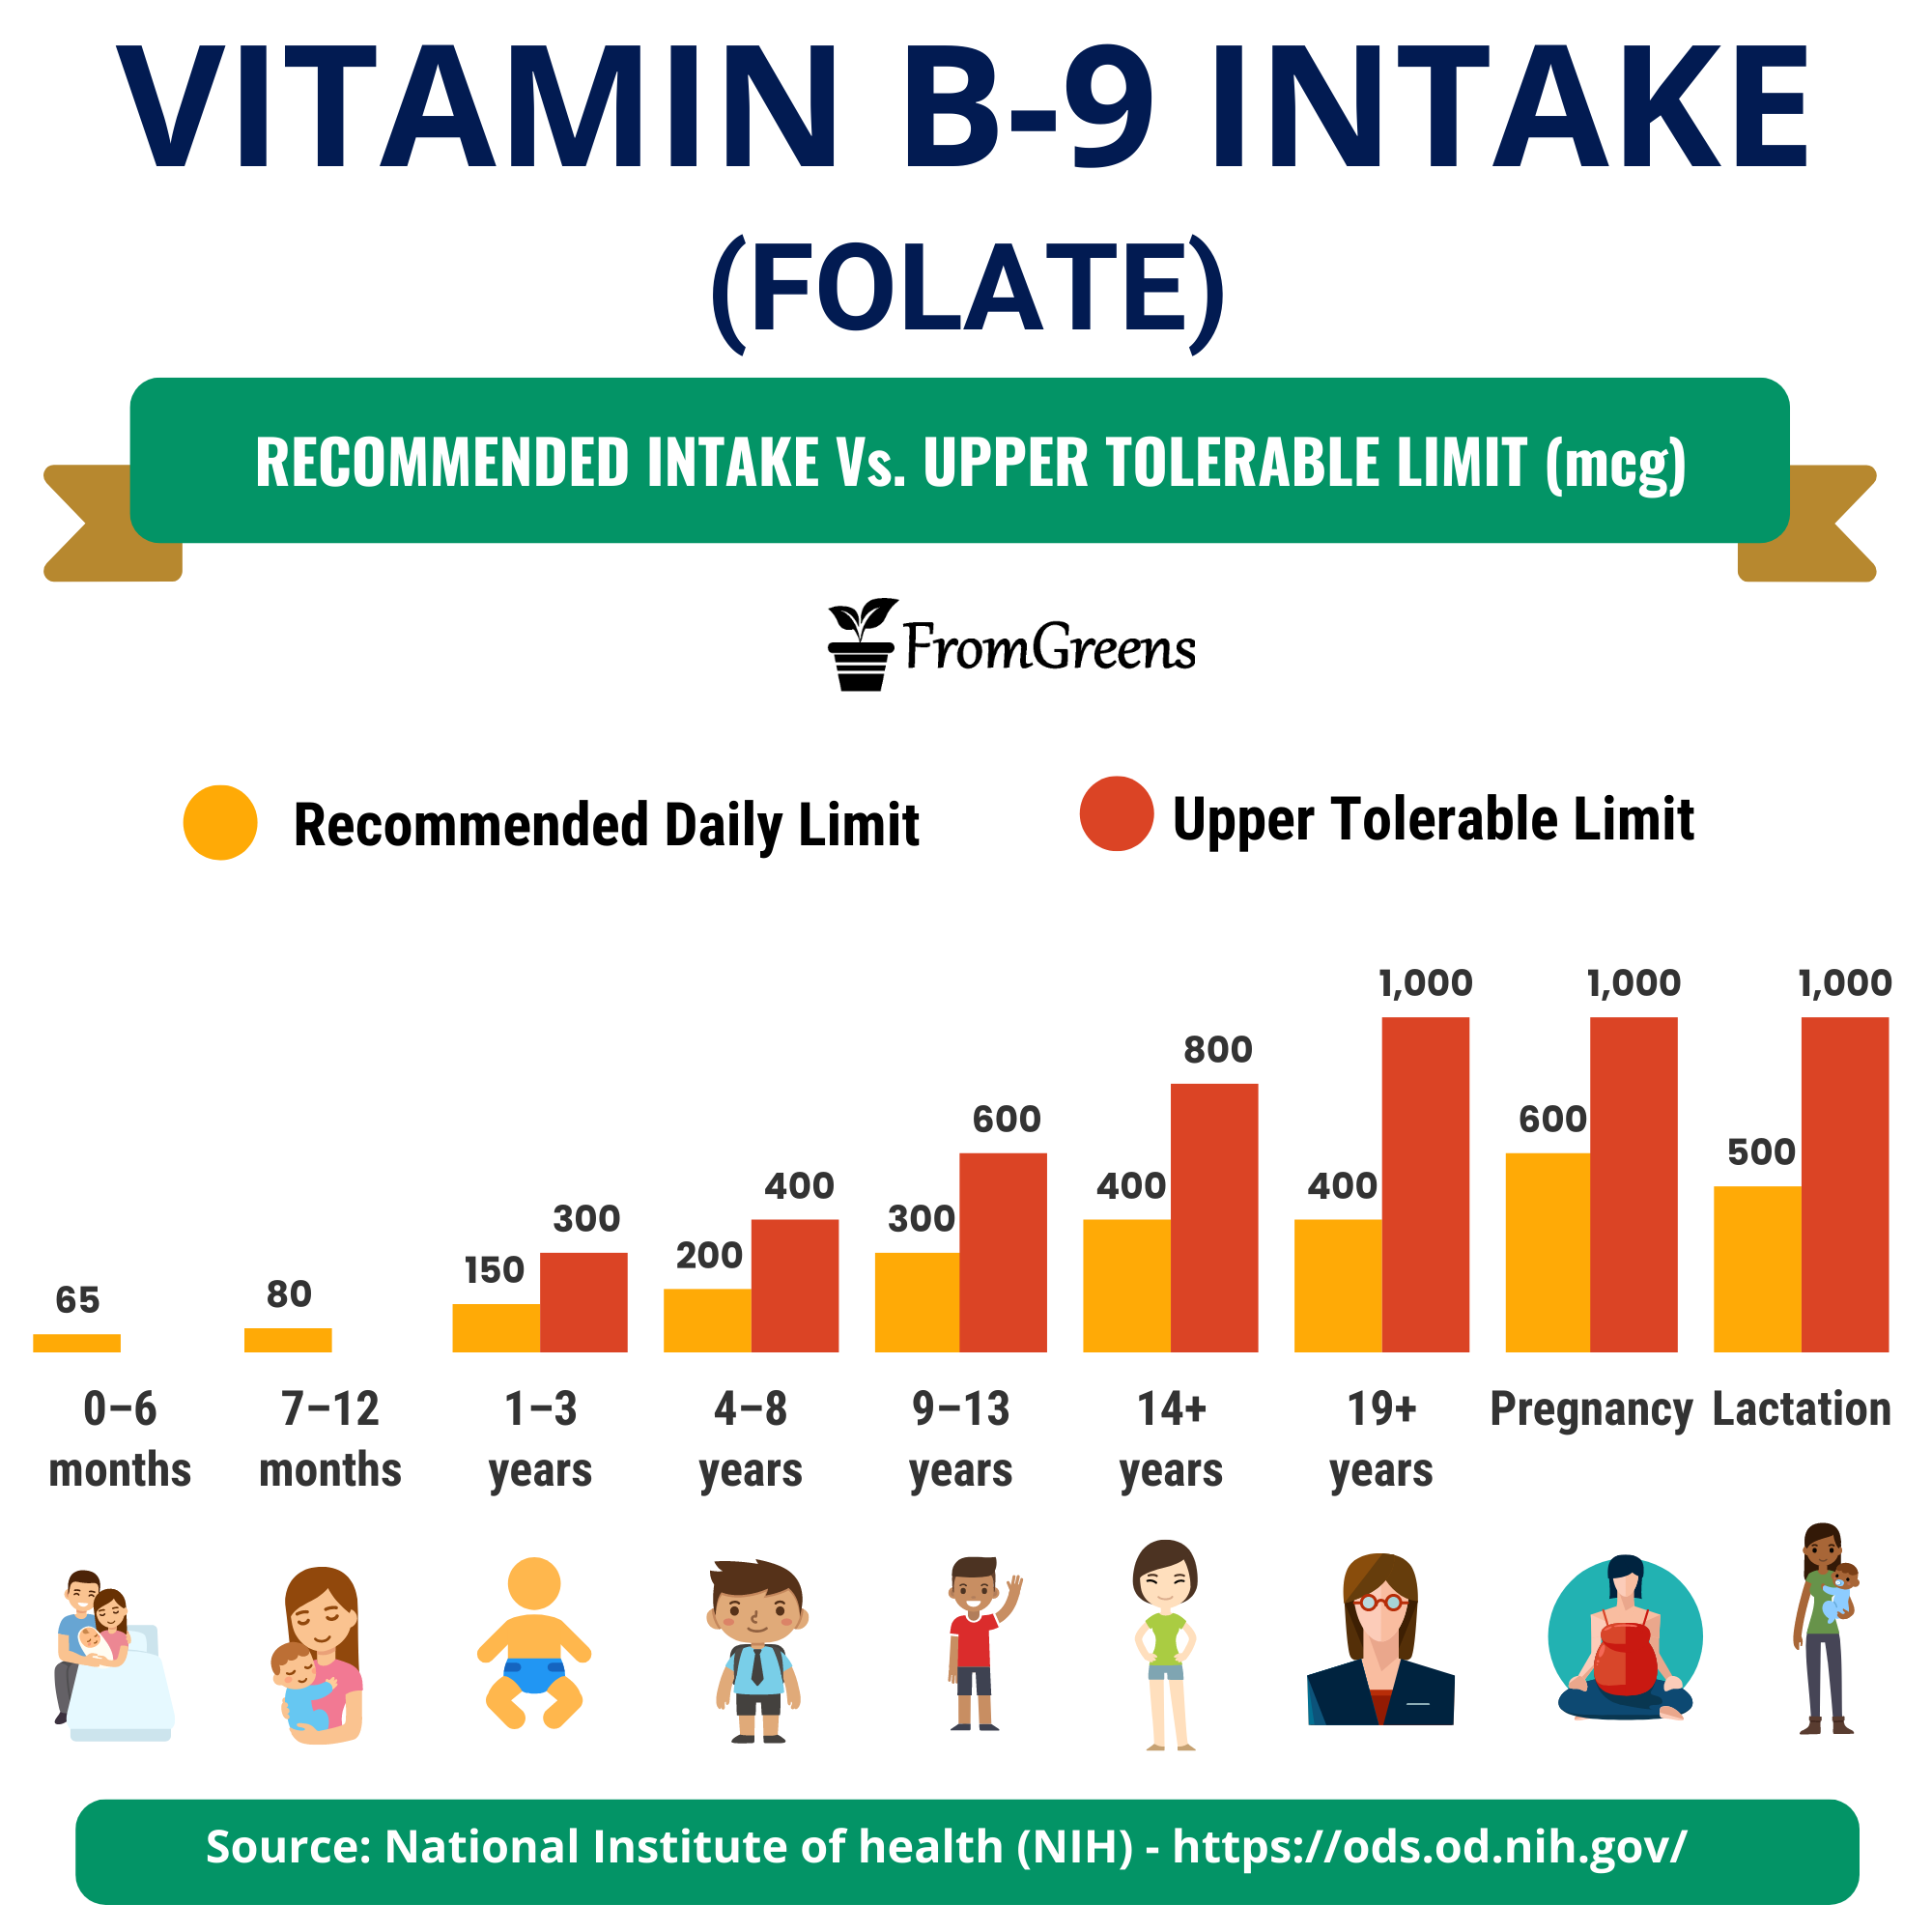 how much vitamin b9 folate is recommended daily